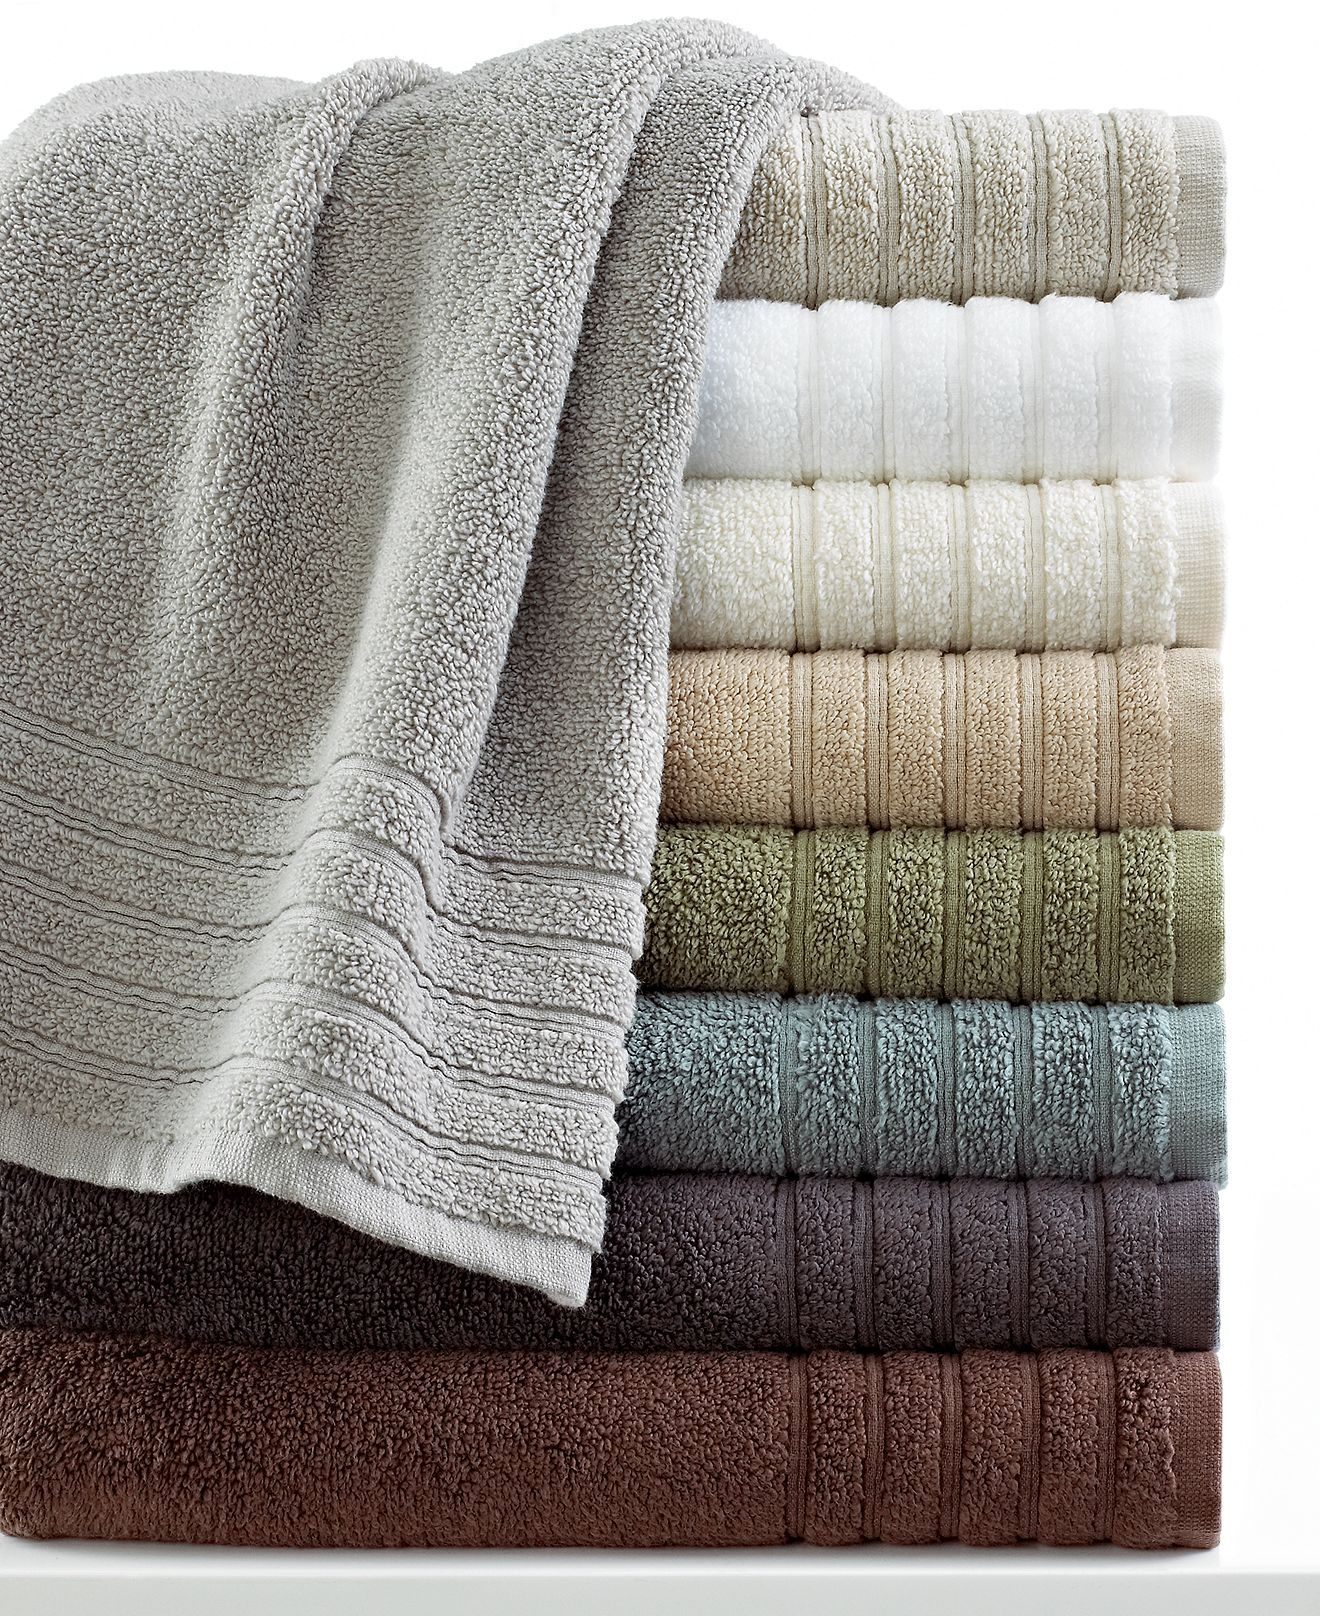 Macys Bath Towels Adorable Hotel Collection Bath Towels Microcotton Collection  Bath Towels Review